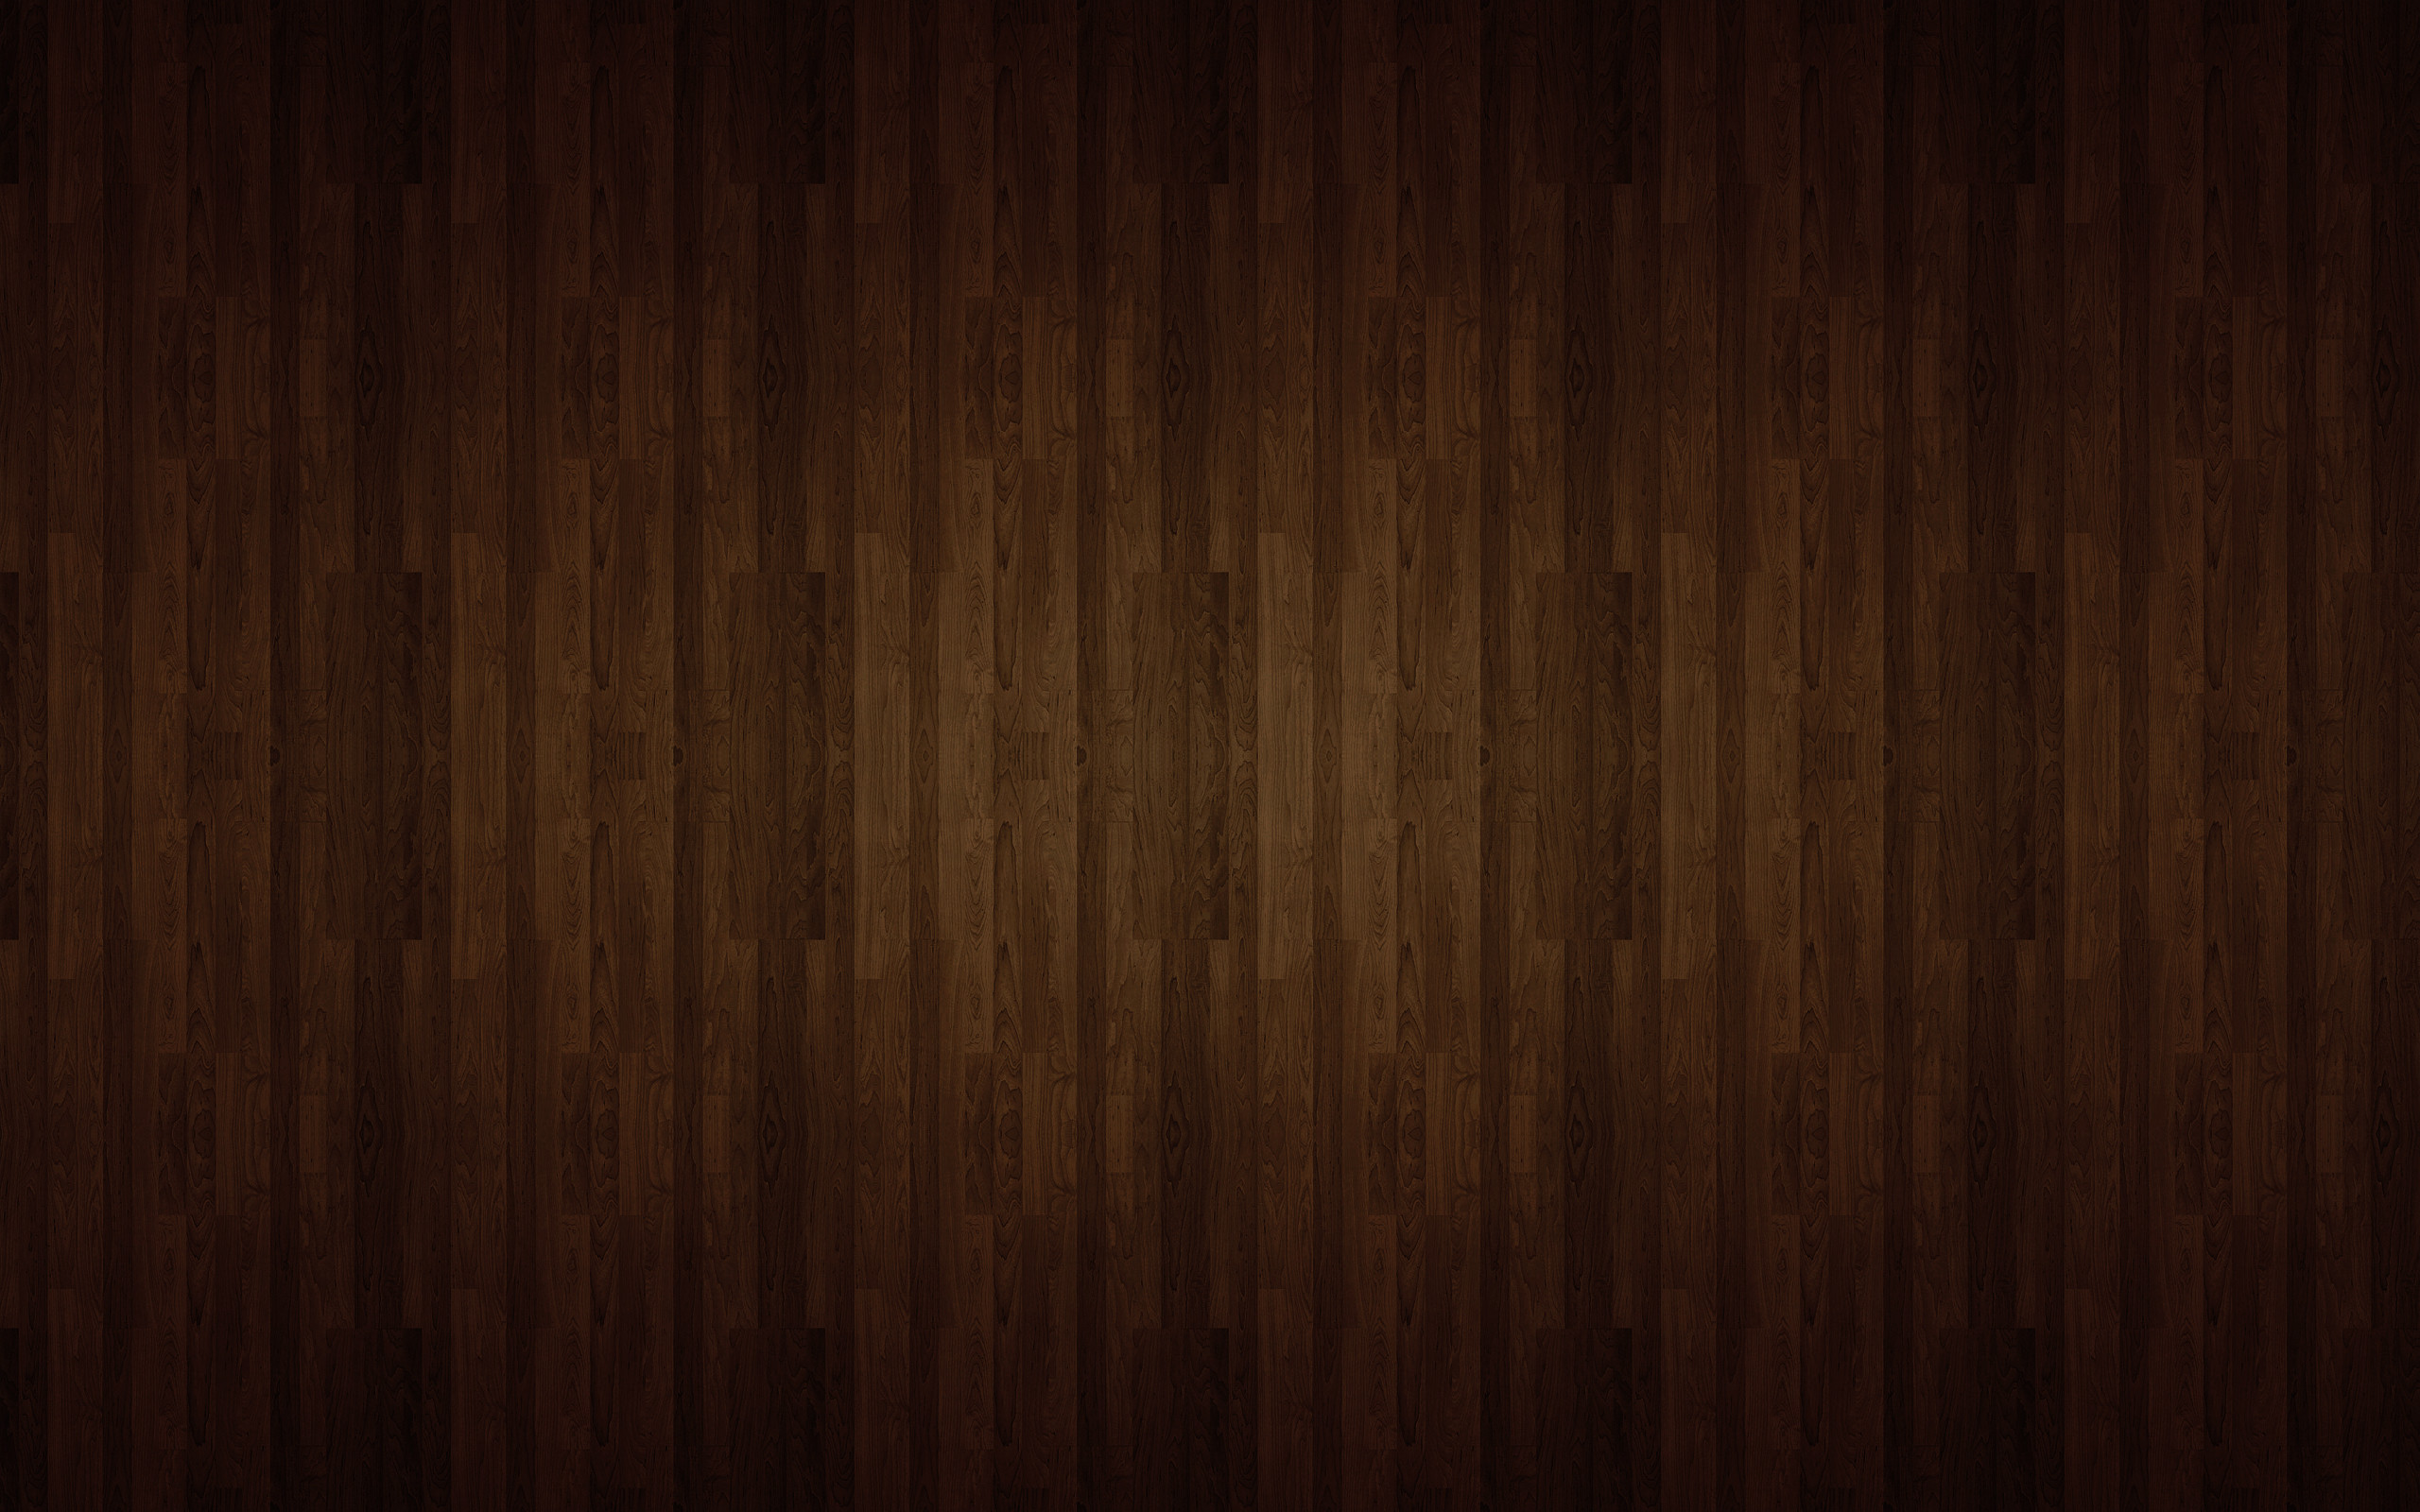 Res: 2560x1600, HD Wallpaper | Background Image ID:81670.  Artistic Wood